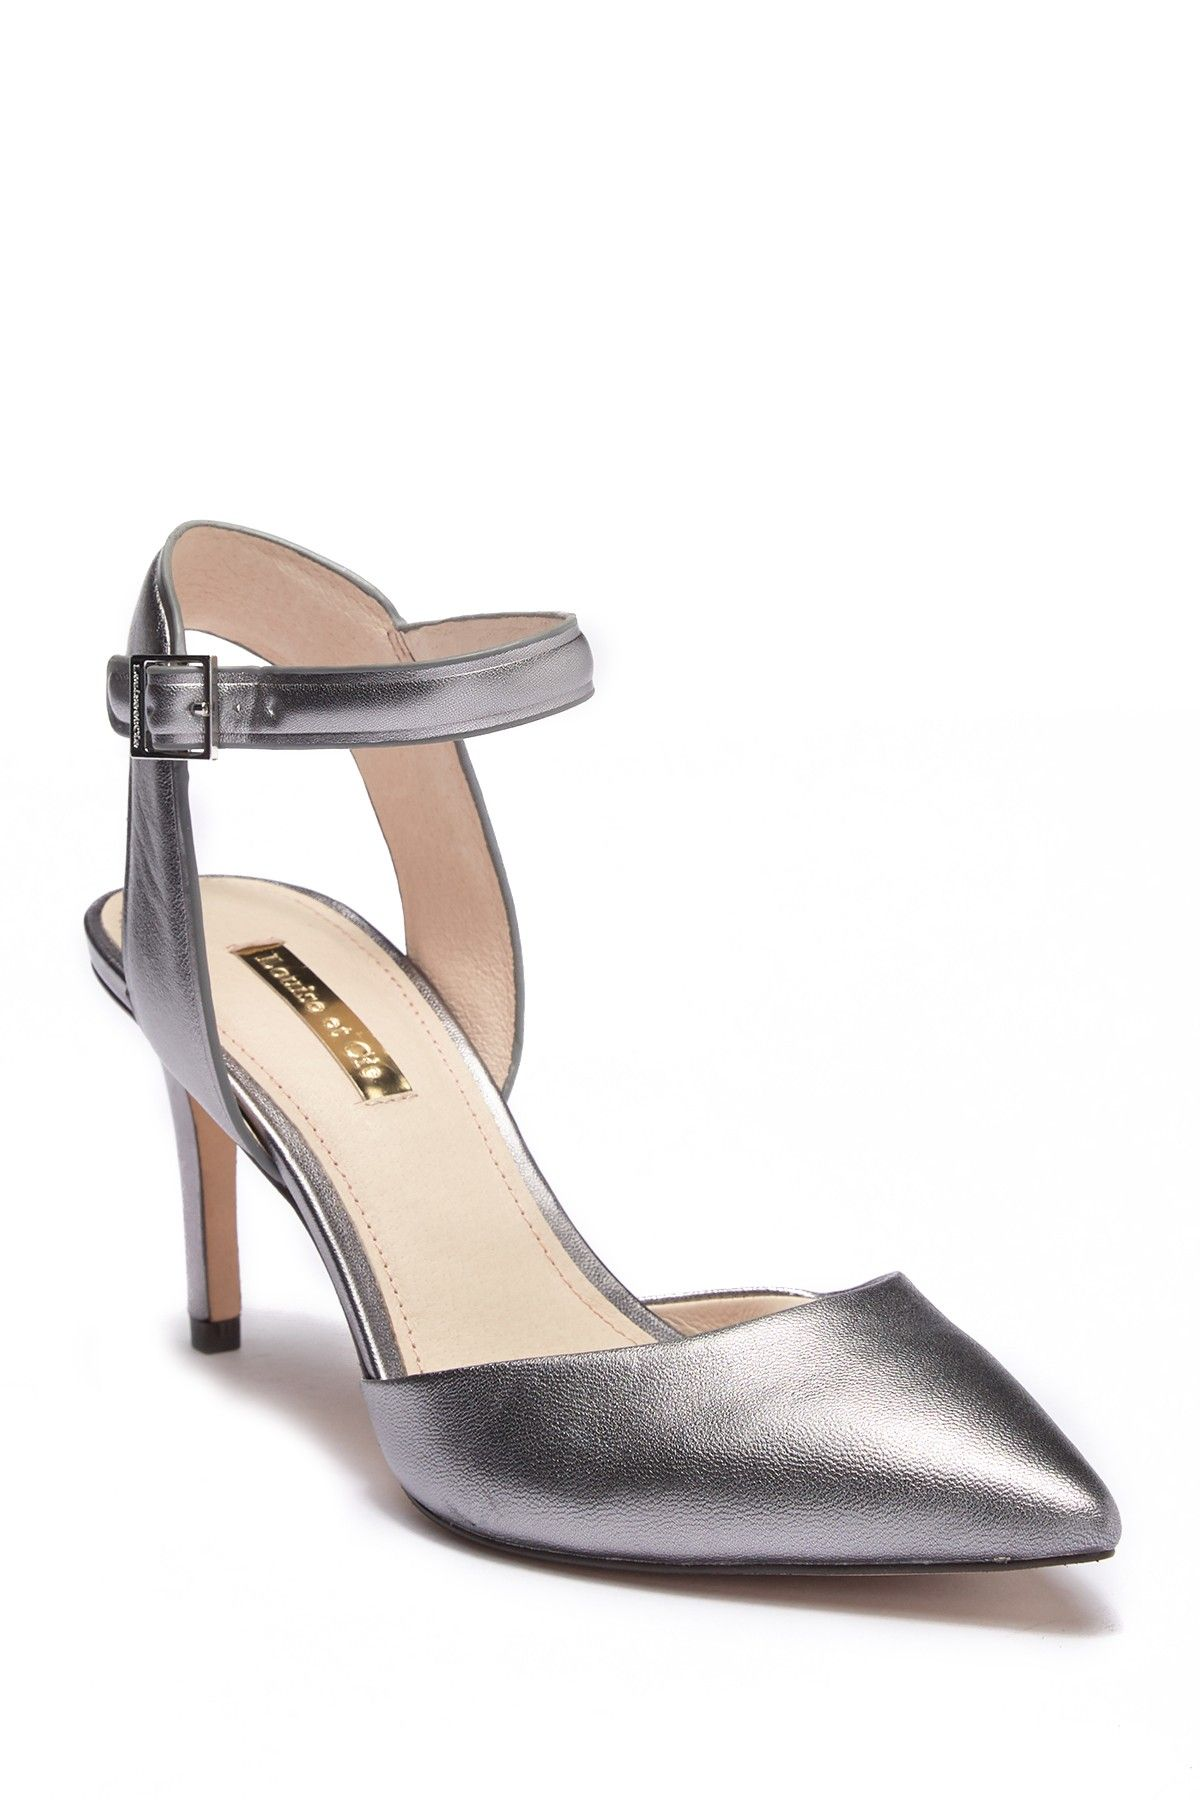 b0d6f552e95e Louise et Cie - Kota Ankle Strap Pump is now 50-60% off. Free Shipping on  orders over  100.